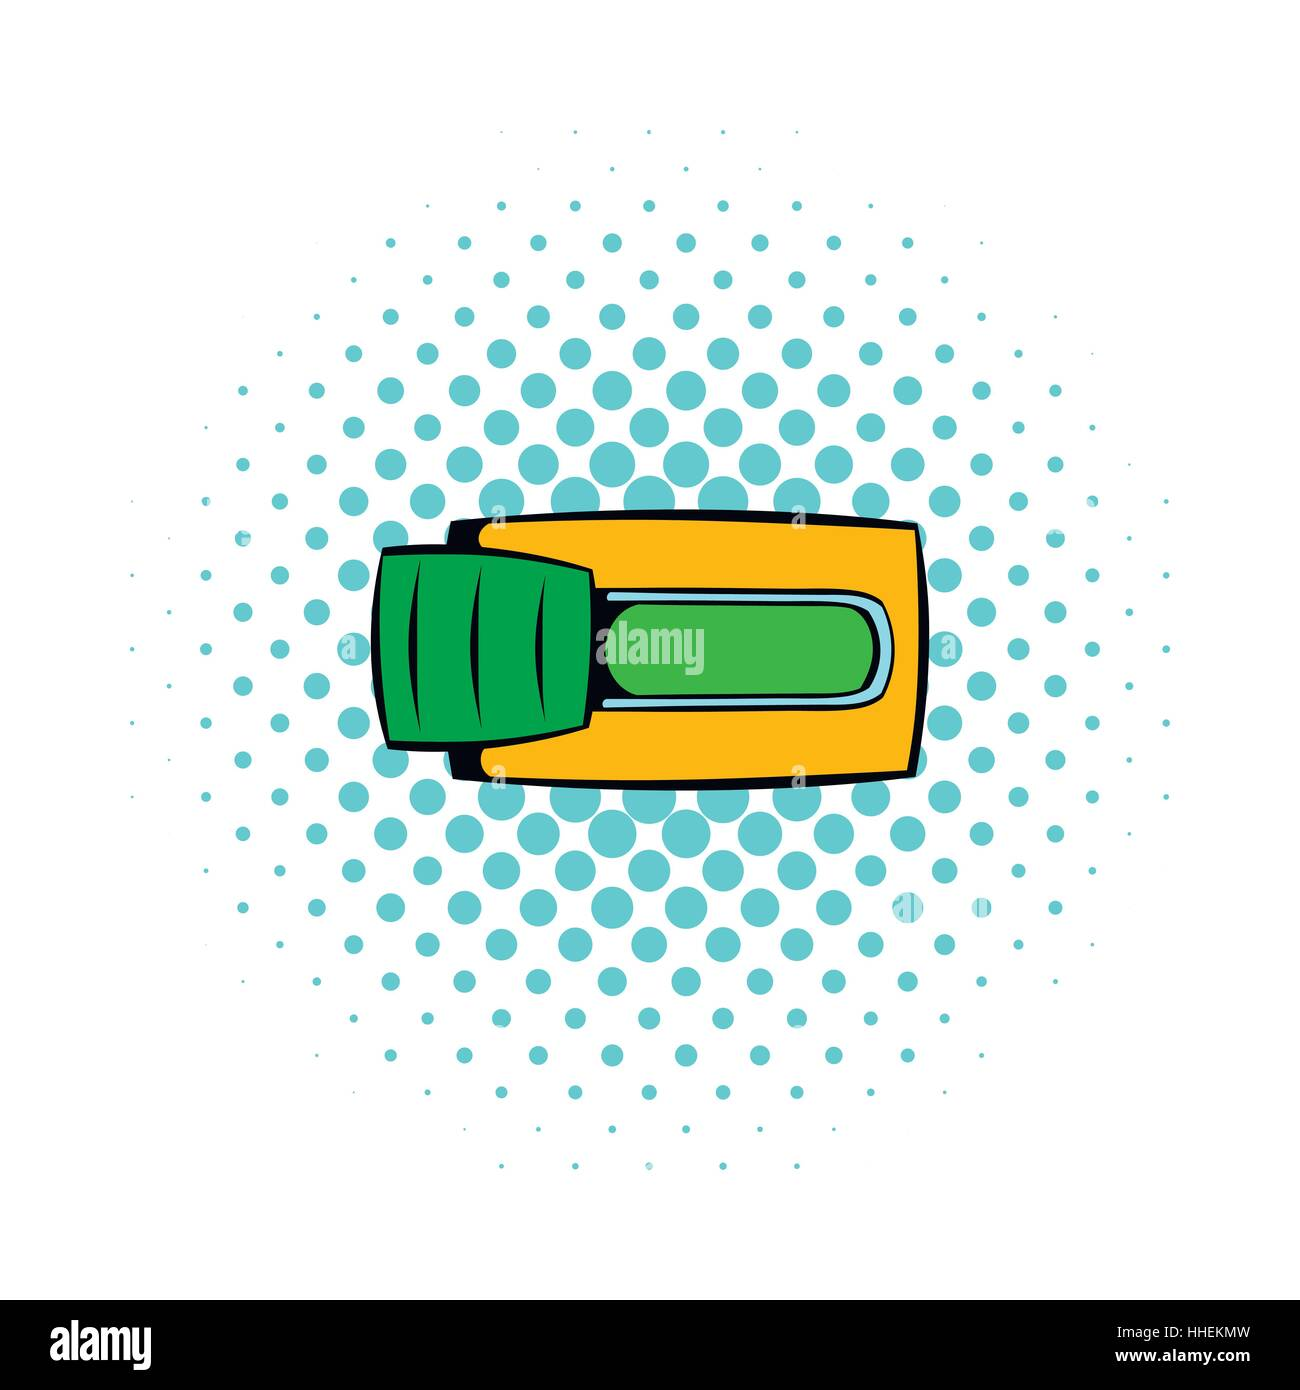 Toggle switch in Yes position icon, comics style - Stock Image